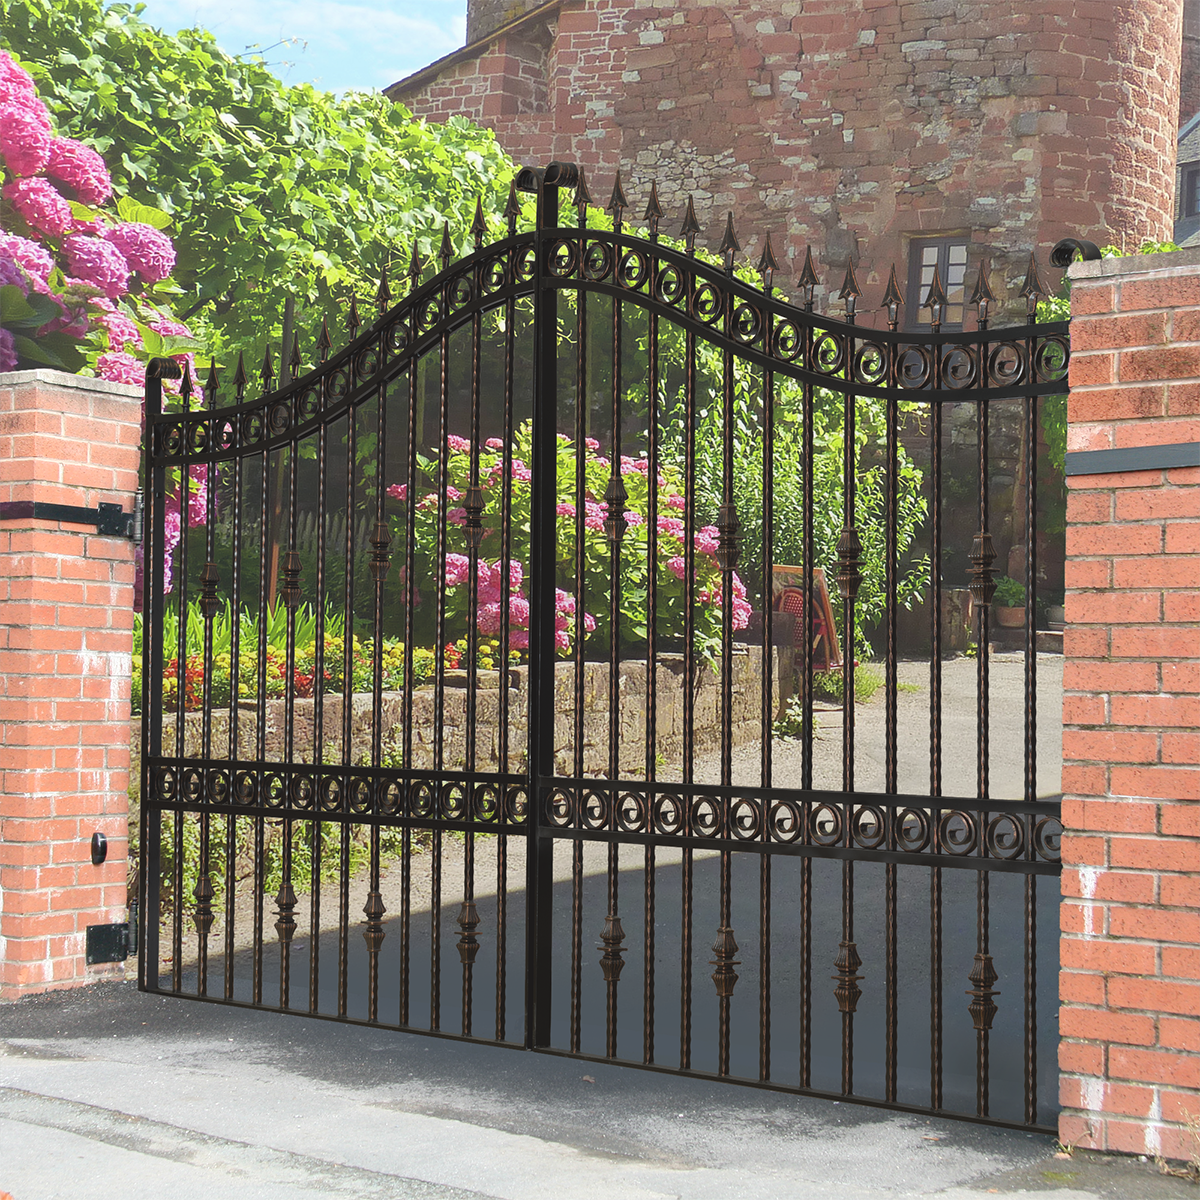 Buy The u0027Gosfordu0027 Wrought Iron Estate Gate from The Iron Gate Shop UK & Buy The u0027Gosfordu0027 Wrought Iron Estate Gate from The Iron Gate Shop ...